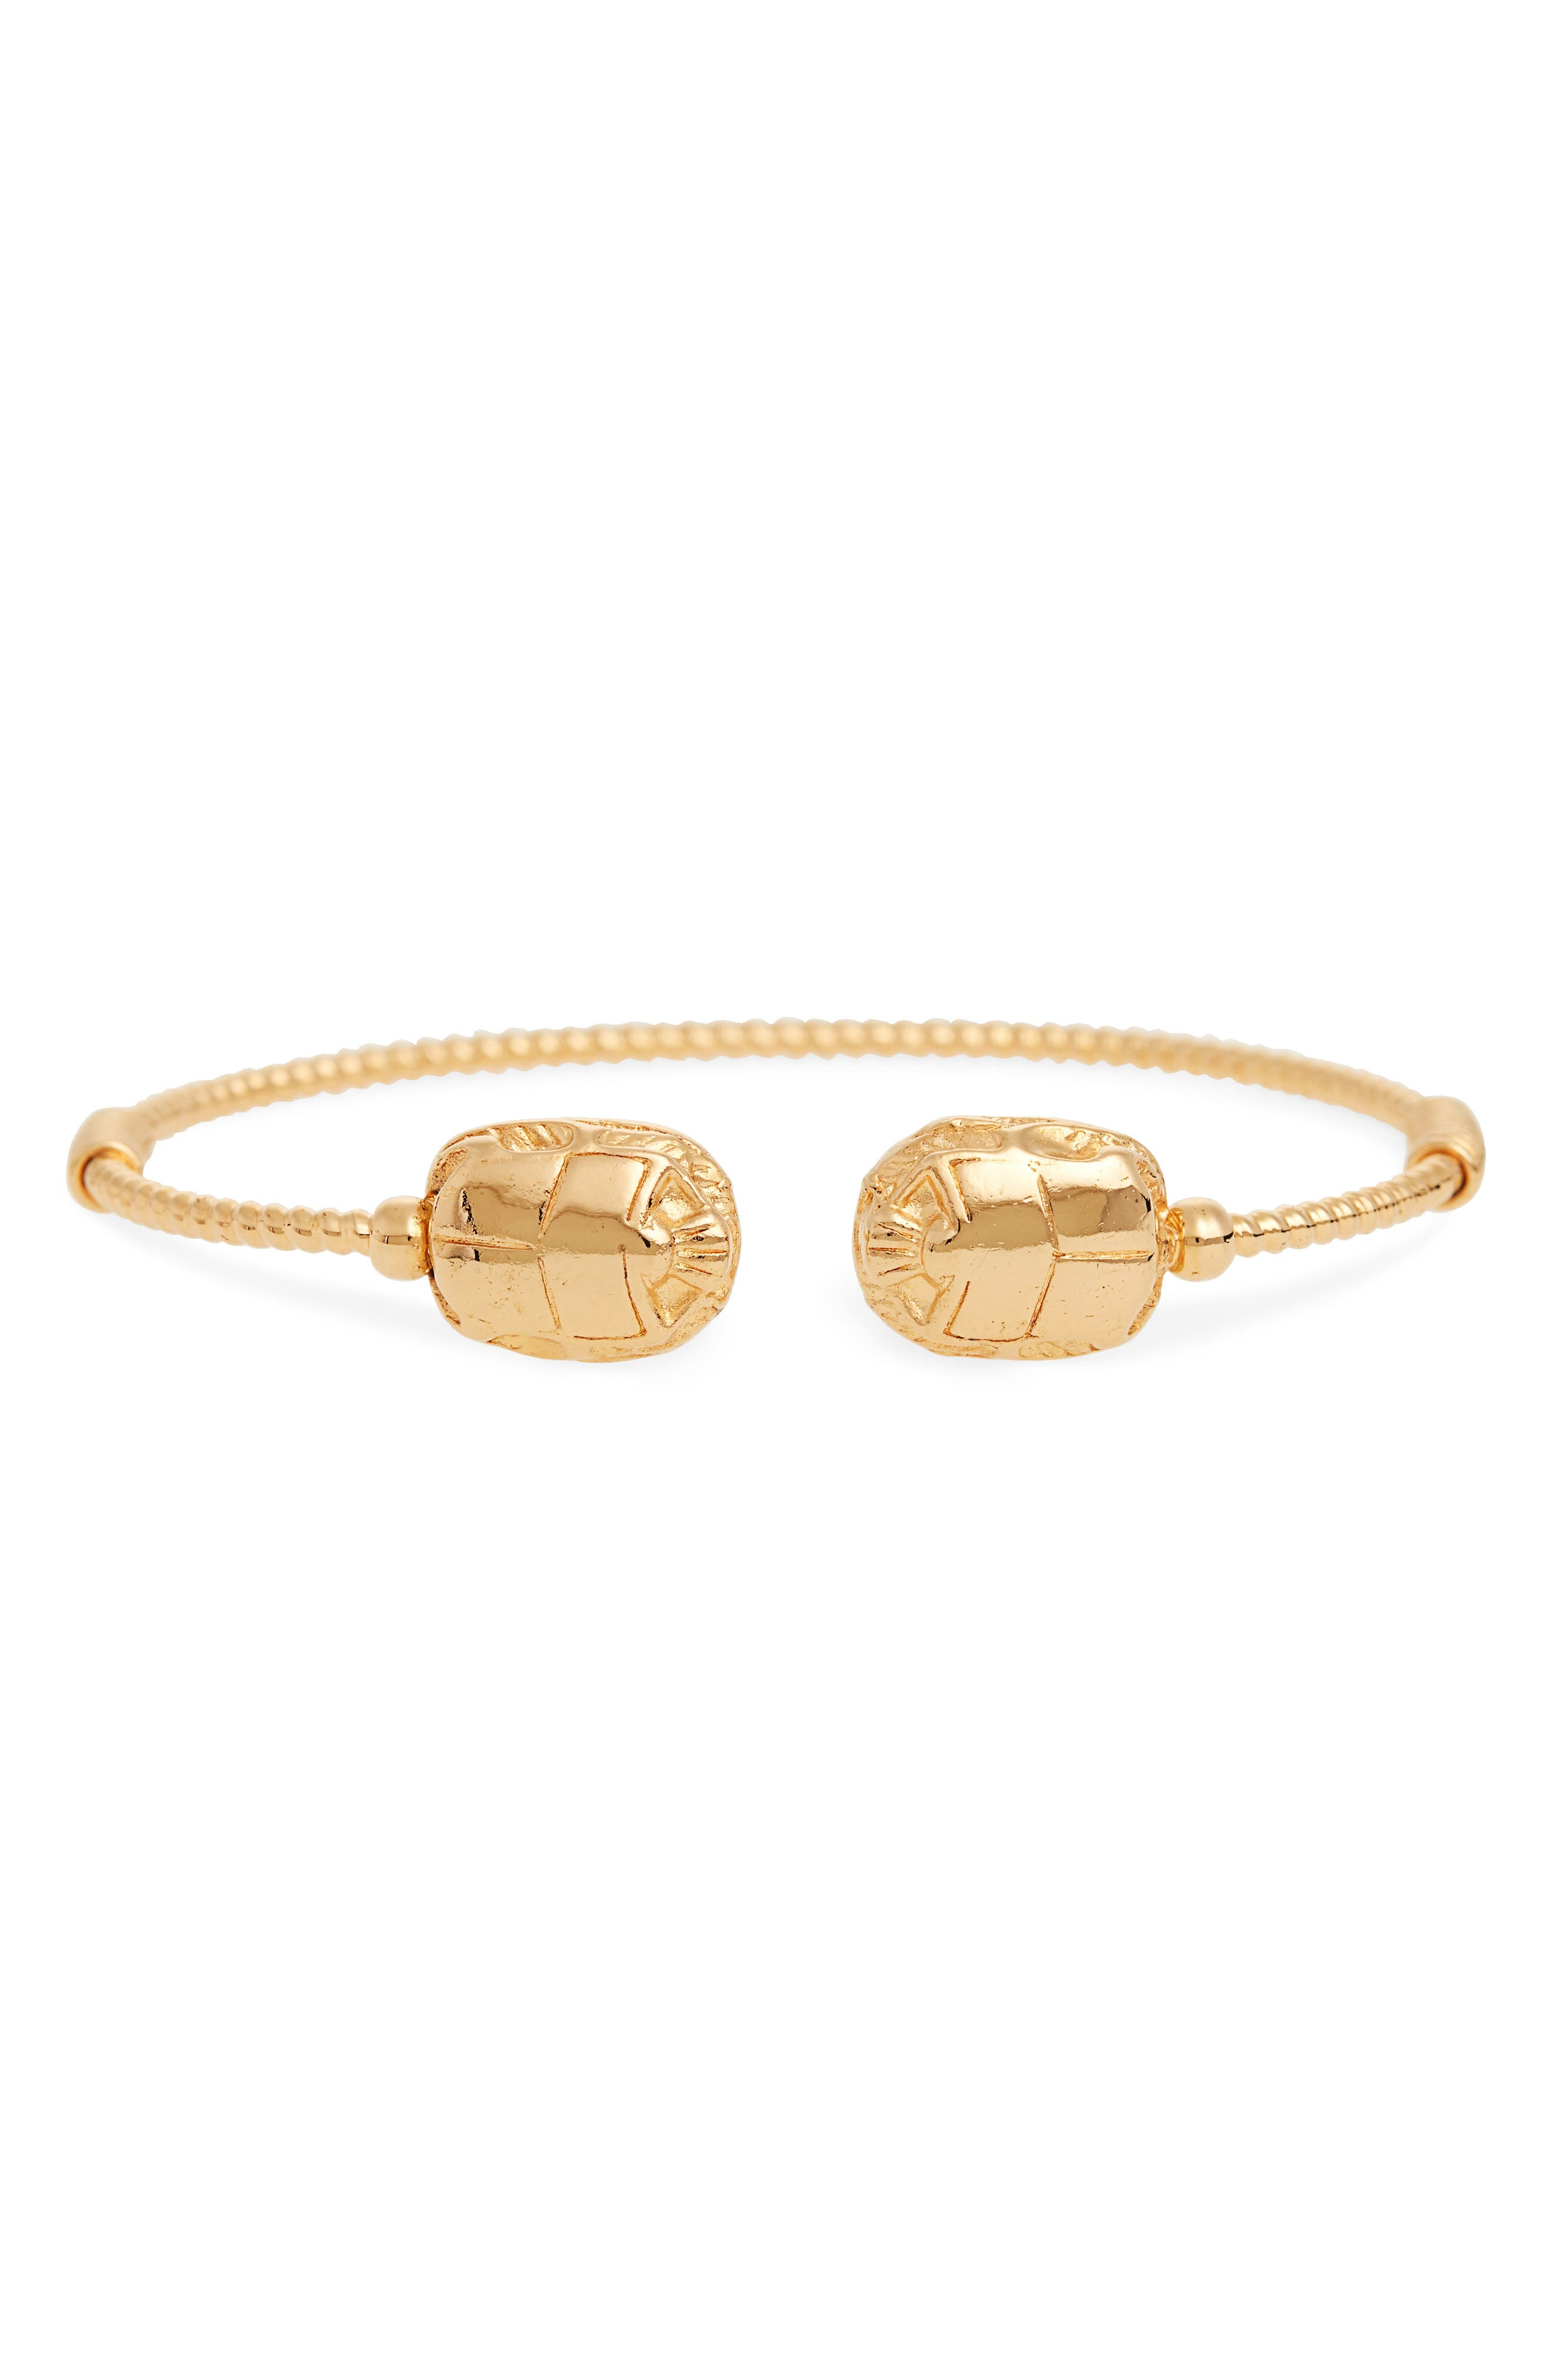 Duality Scaramouche Cuff Bracelet,                             Main thumbnail 1, color,                             GOLD